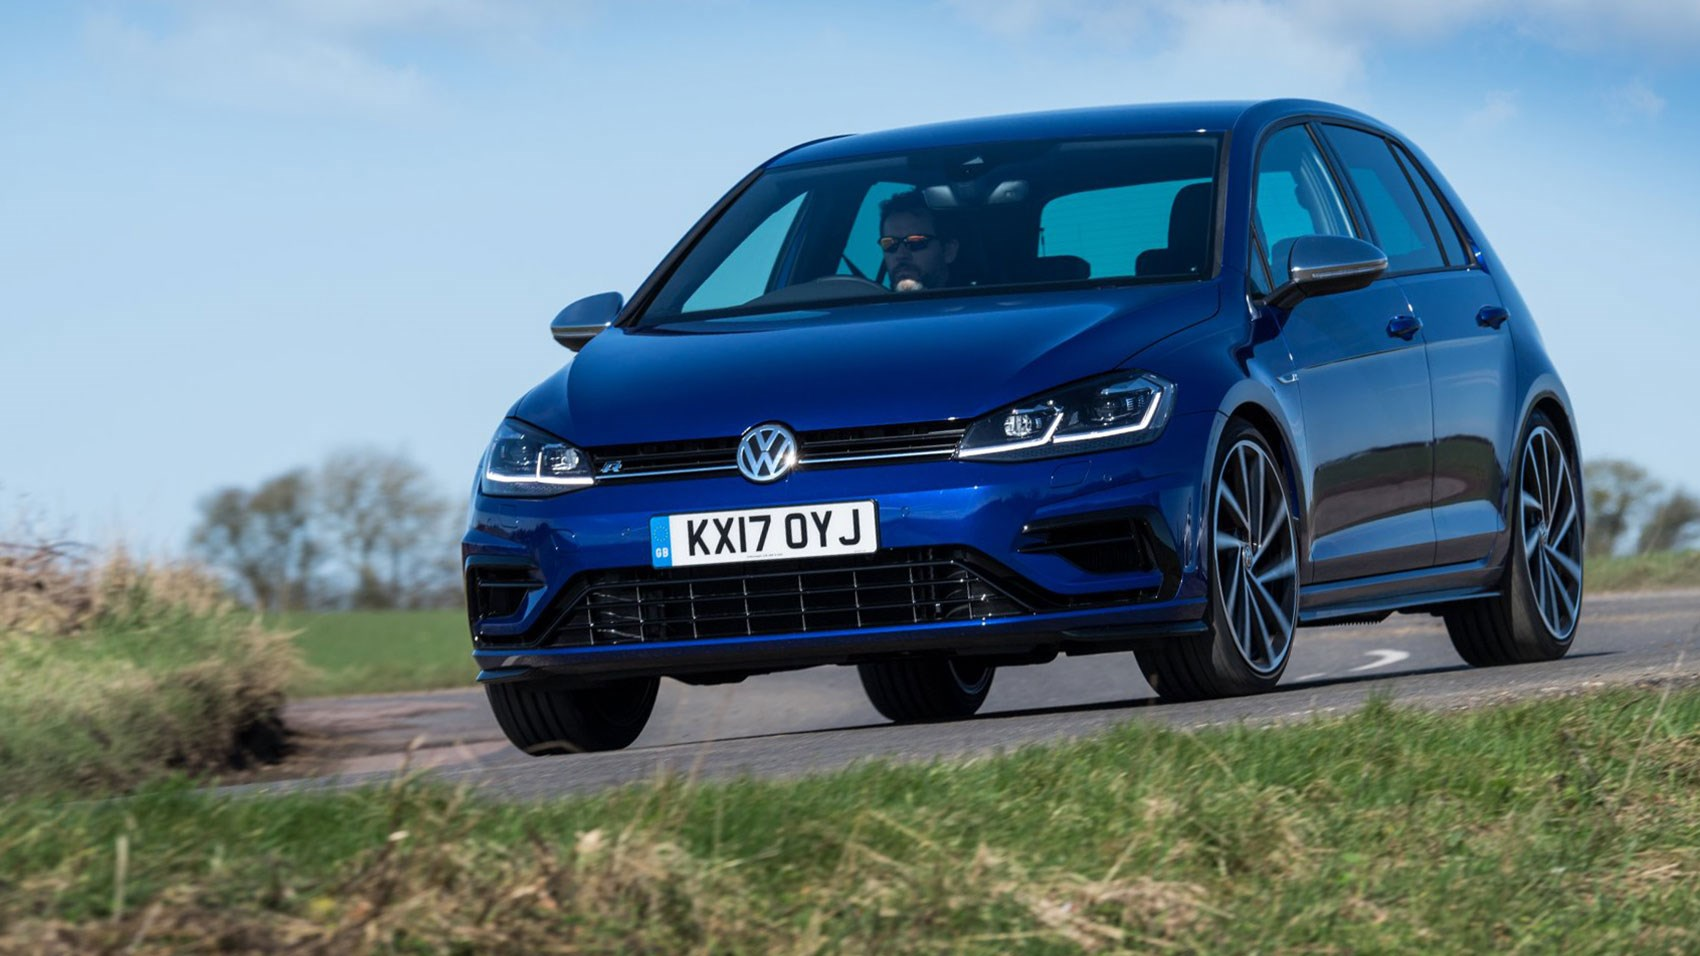 Vw Golf R Review And Performance Pack Car Magazine Gti Engine Cooling System Specs Prices 31865 A 306bhp Turbocharged 20 Litre